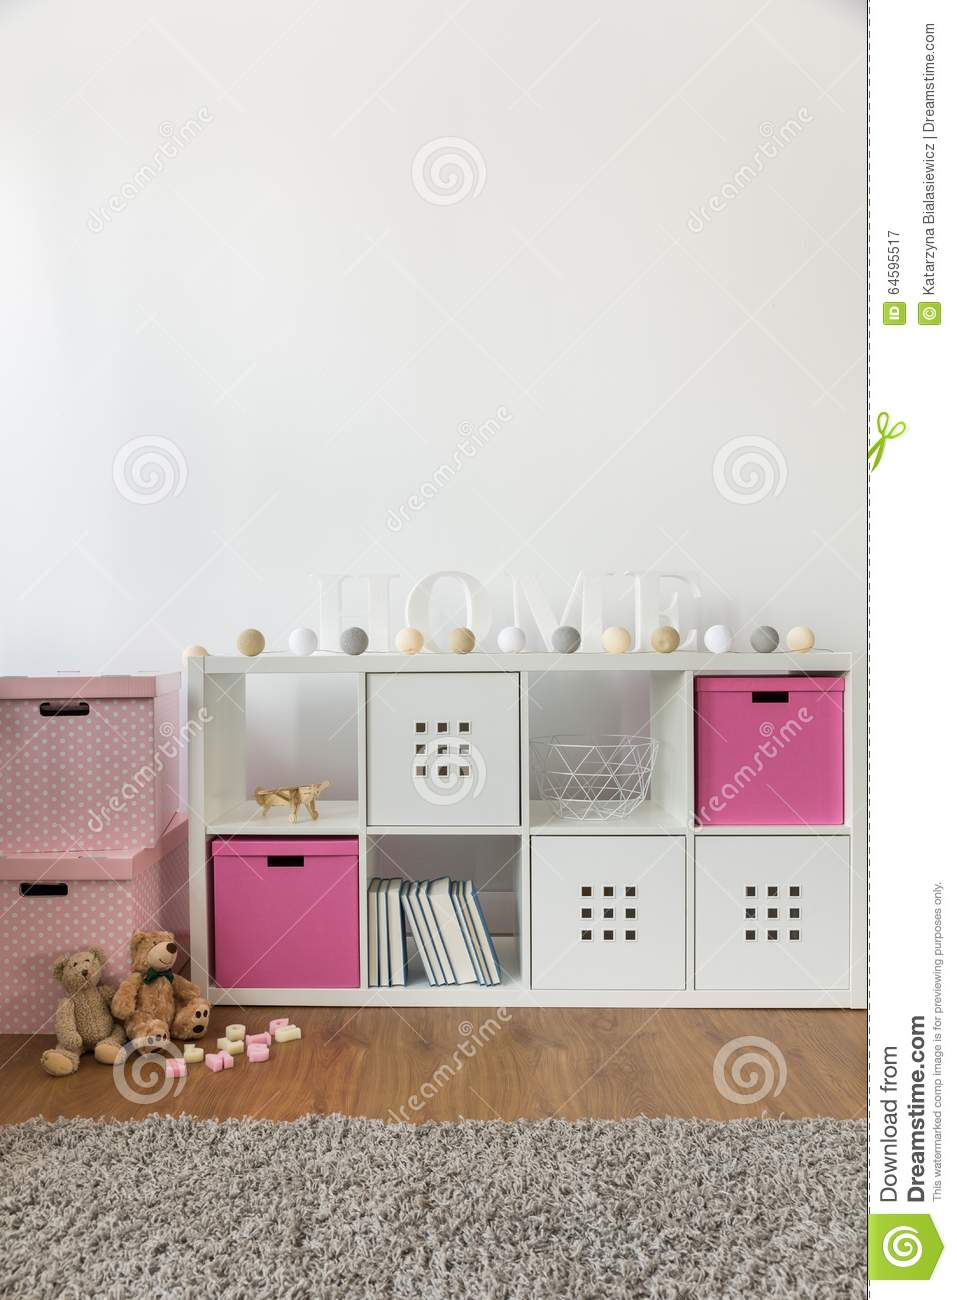 Commode Rose Commode With Rose Boxes Stock Image Image Of Cozy Girl 64595517